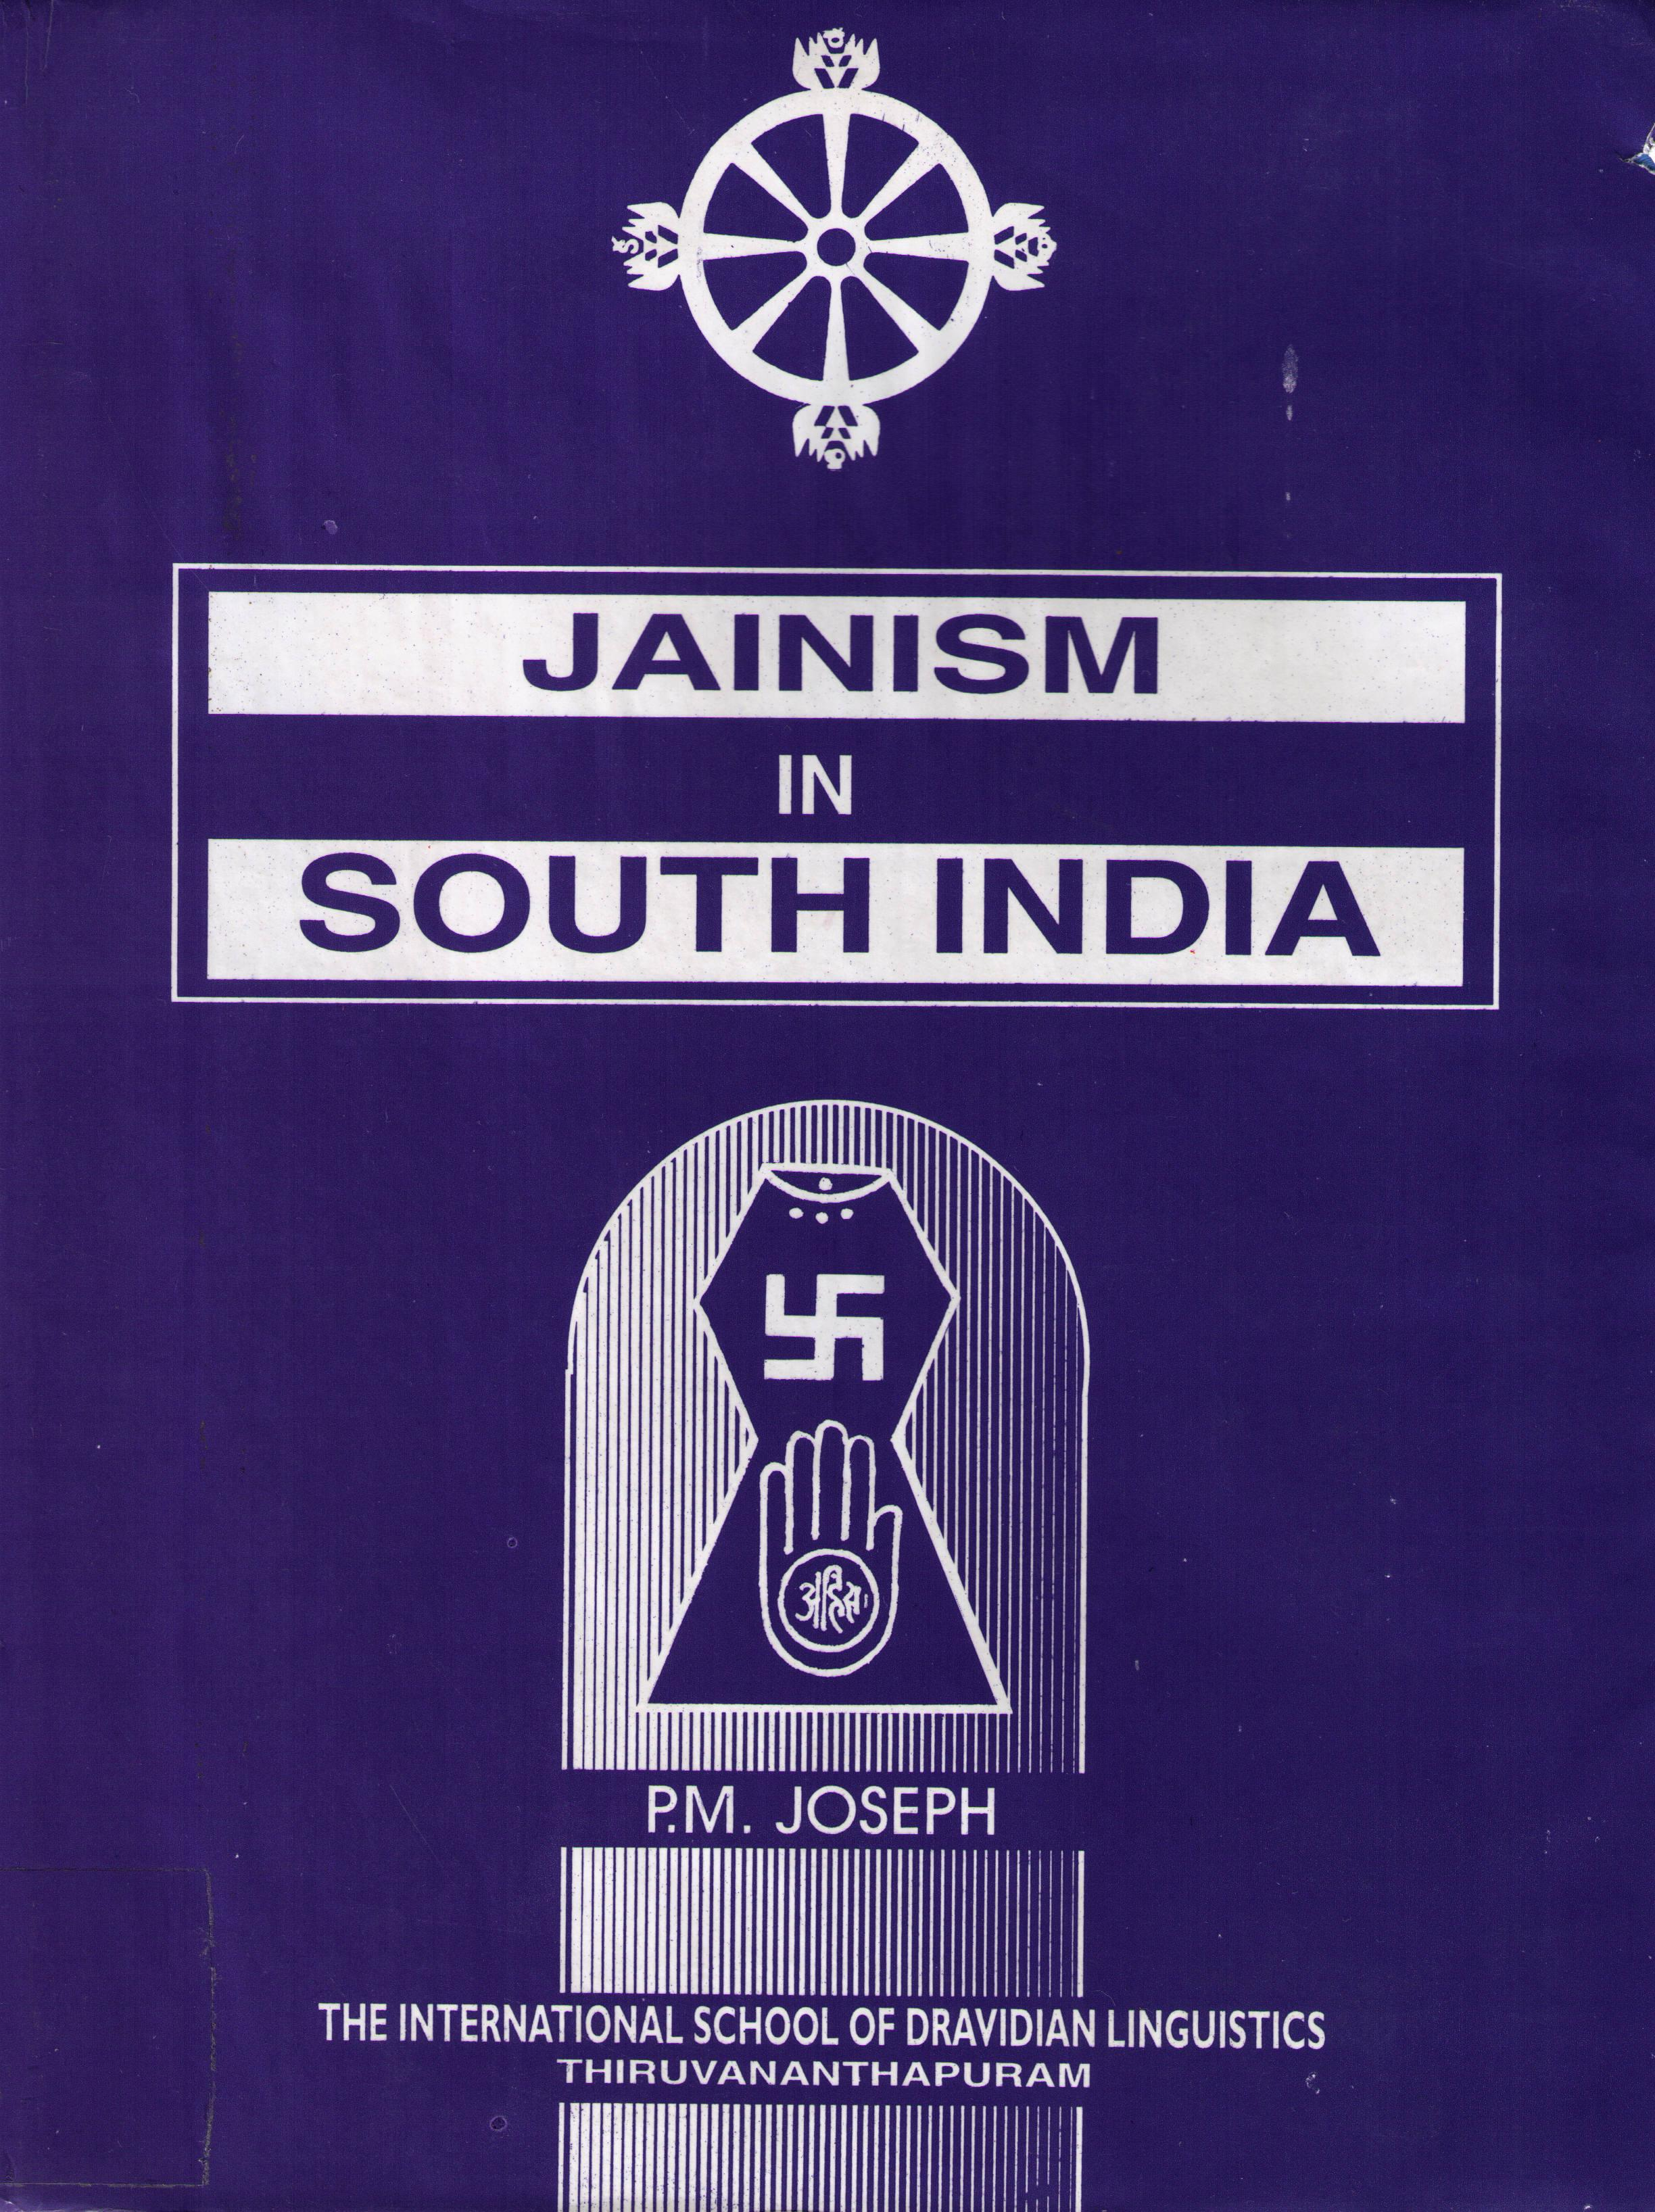 http://www.herenow4u.net/fileadmin/v3media/pics/books/Jainism_in_South_India.jpg